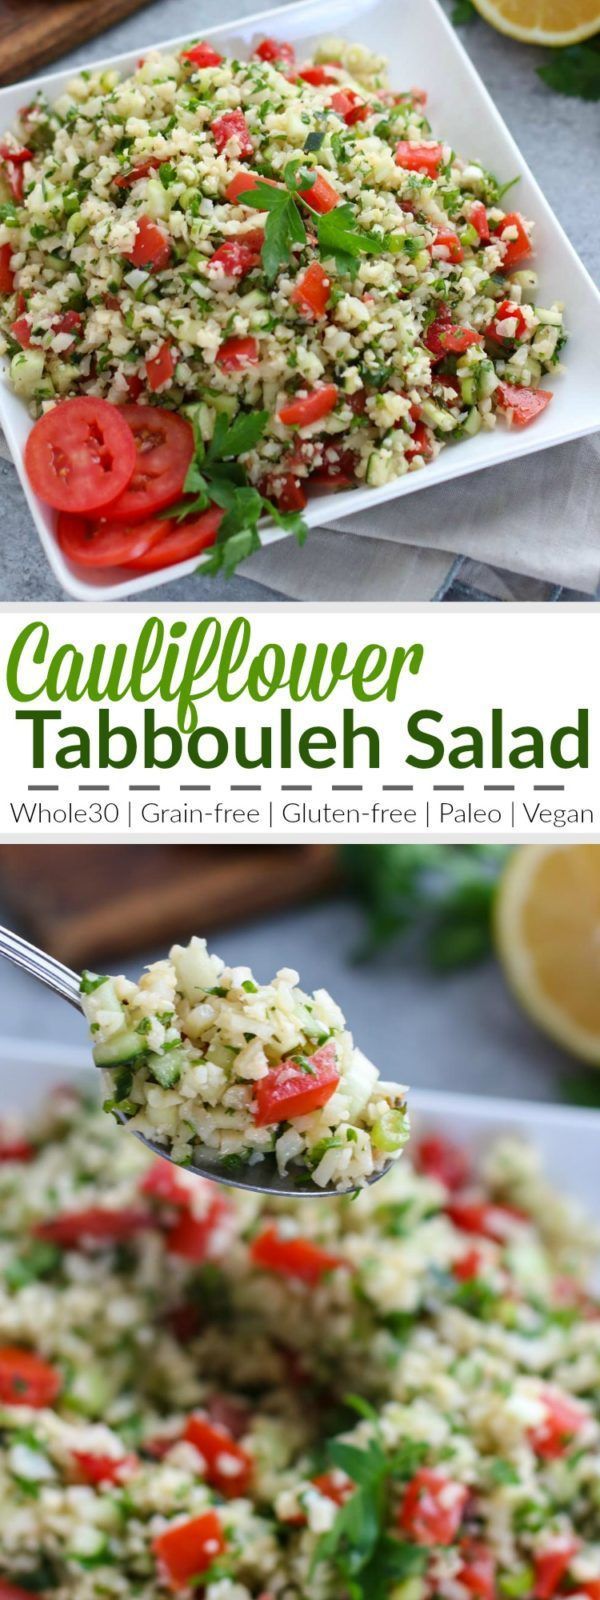 Cauliflower Tabbouleh Salad | A fresh grain-free take on a traditional Middle Eastern dish! We've replaced the bulgur wheat with lightly sauteed cauliflower 'rice' for a gluten-free and paleo-friendly side dish to serve with your favorite protein or share at your next potluck event. | Whole30 | Vegan | Gluten-free | http://therealfoodrds.com/cauliflower-tabbouleh-salad/